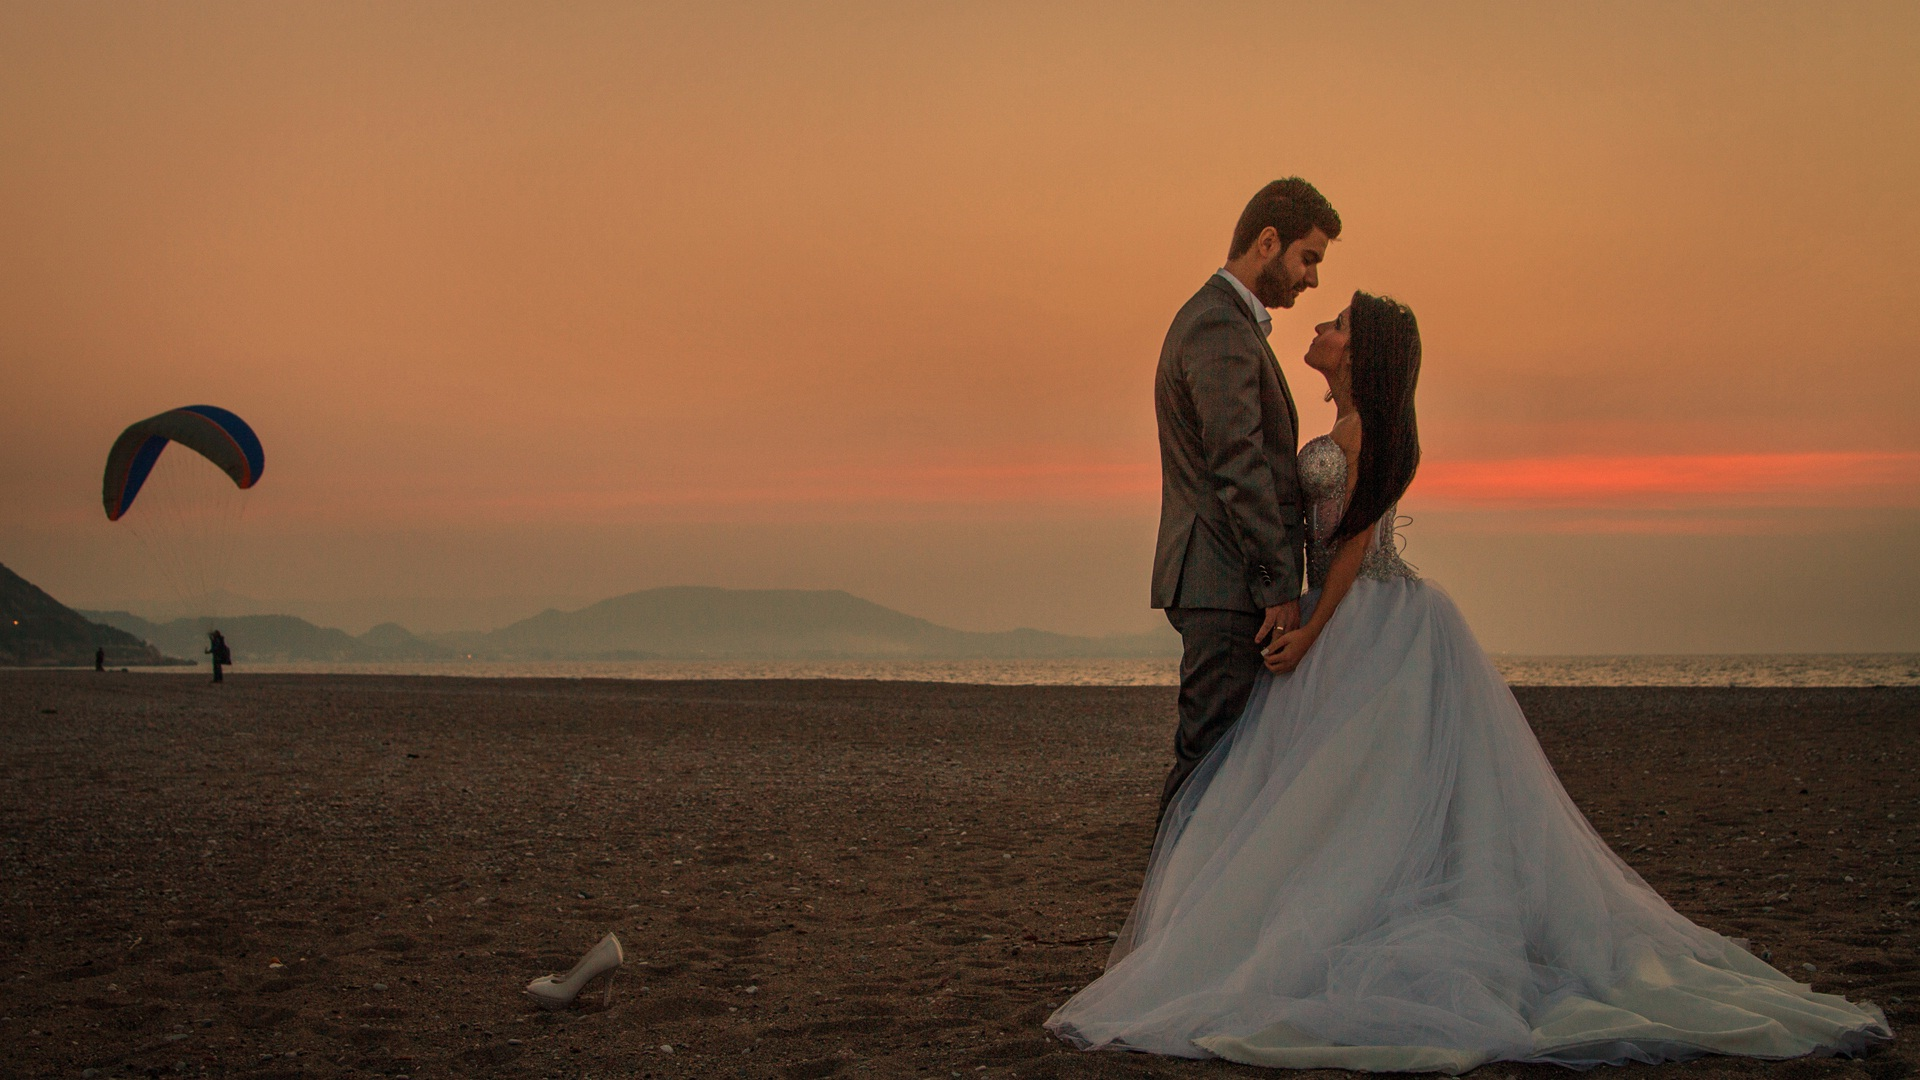 Most Beautiful Photographs of Romantic Couples !! Love and Romance ...